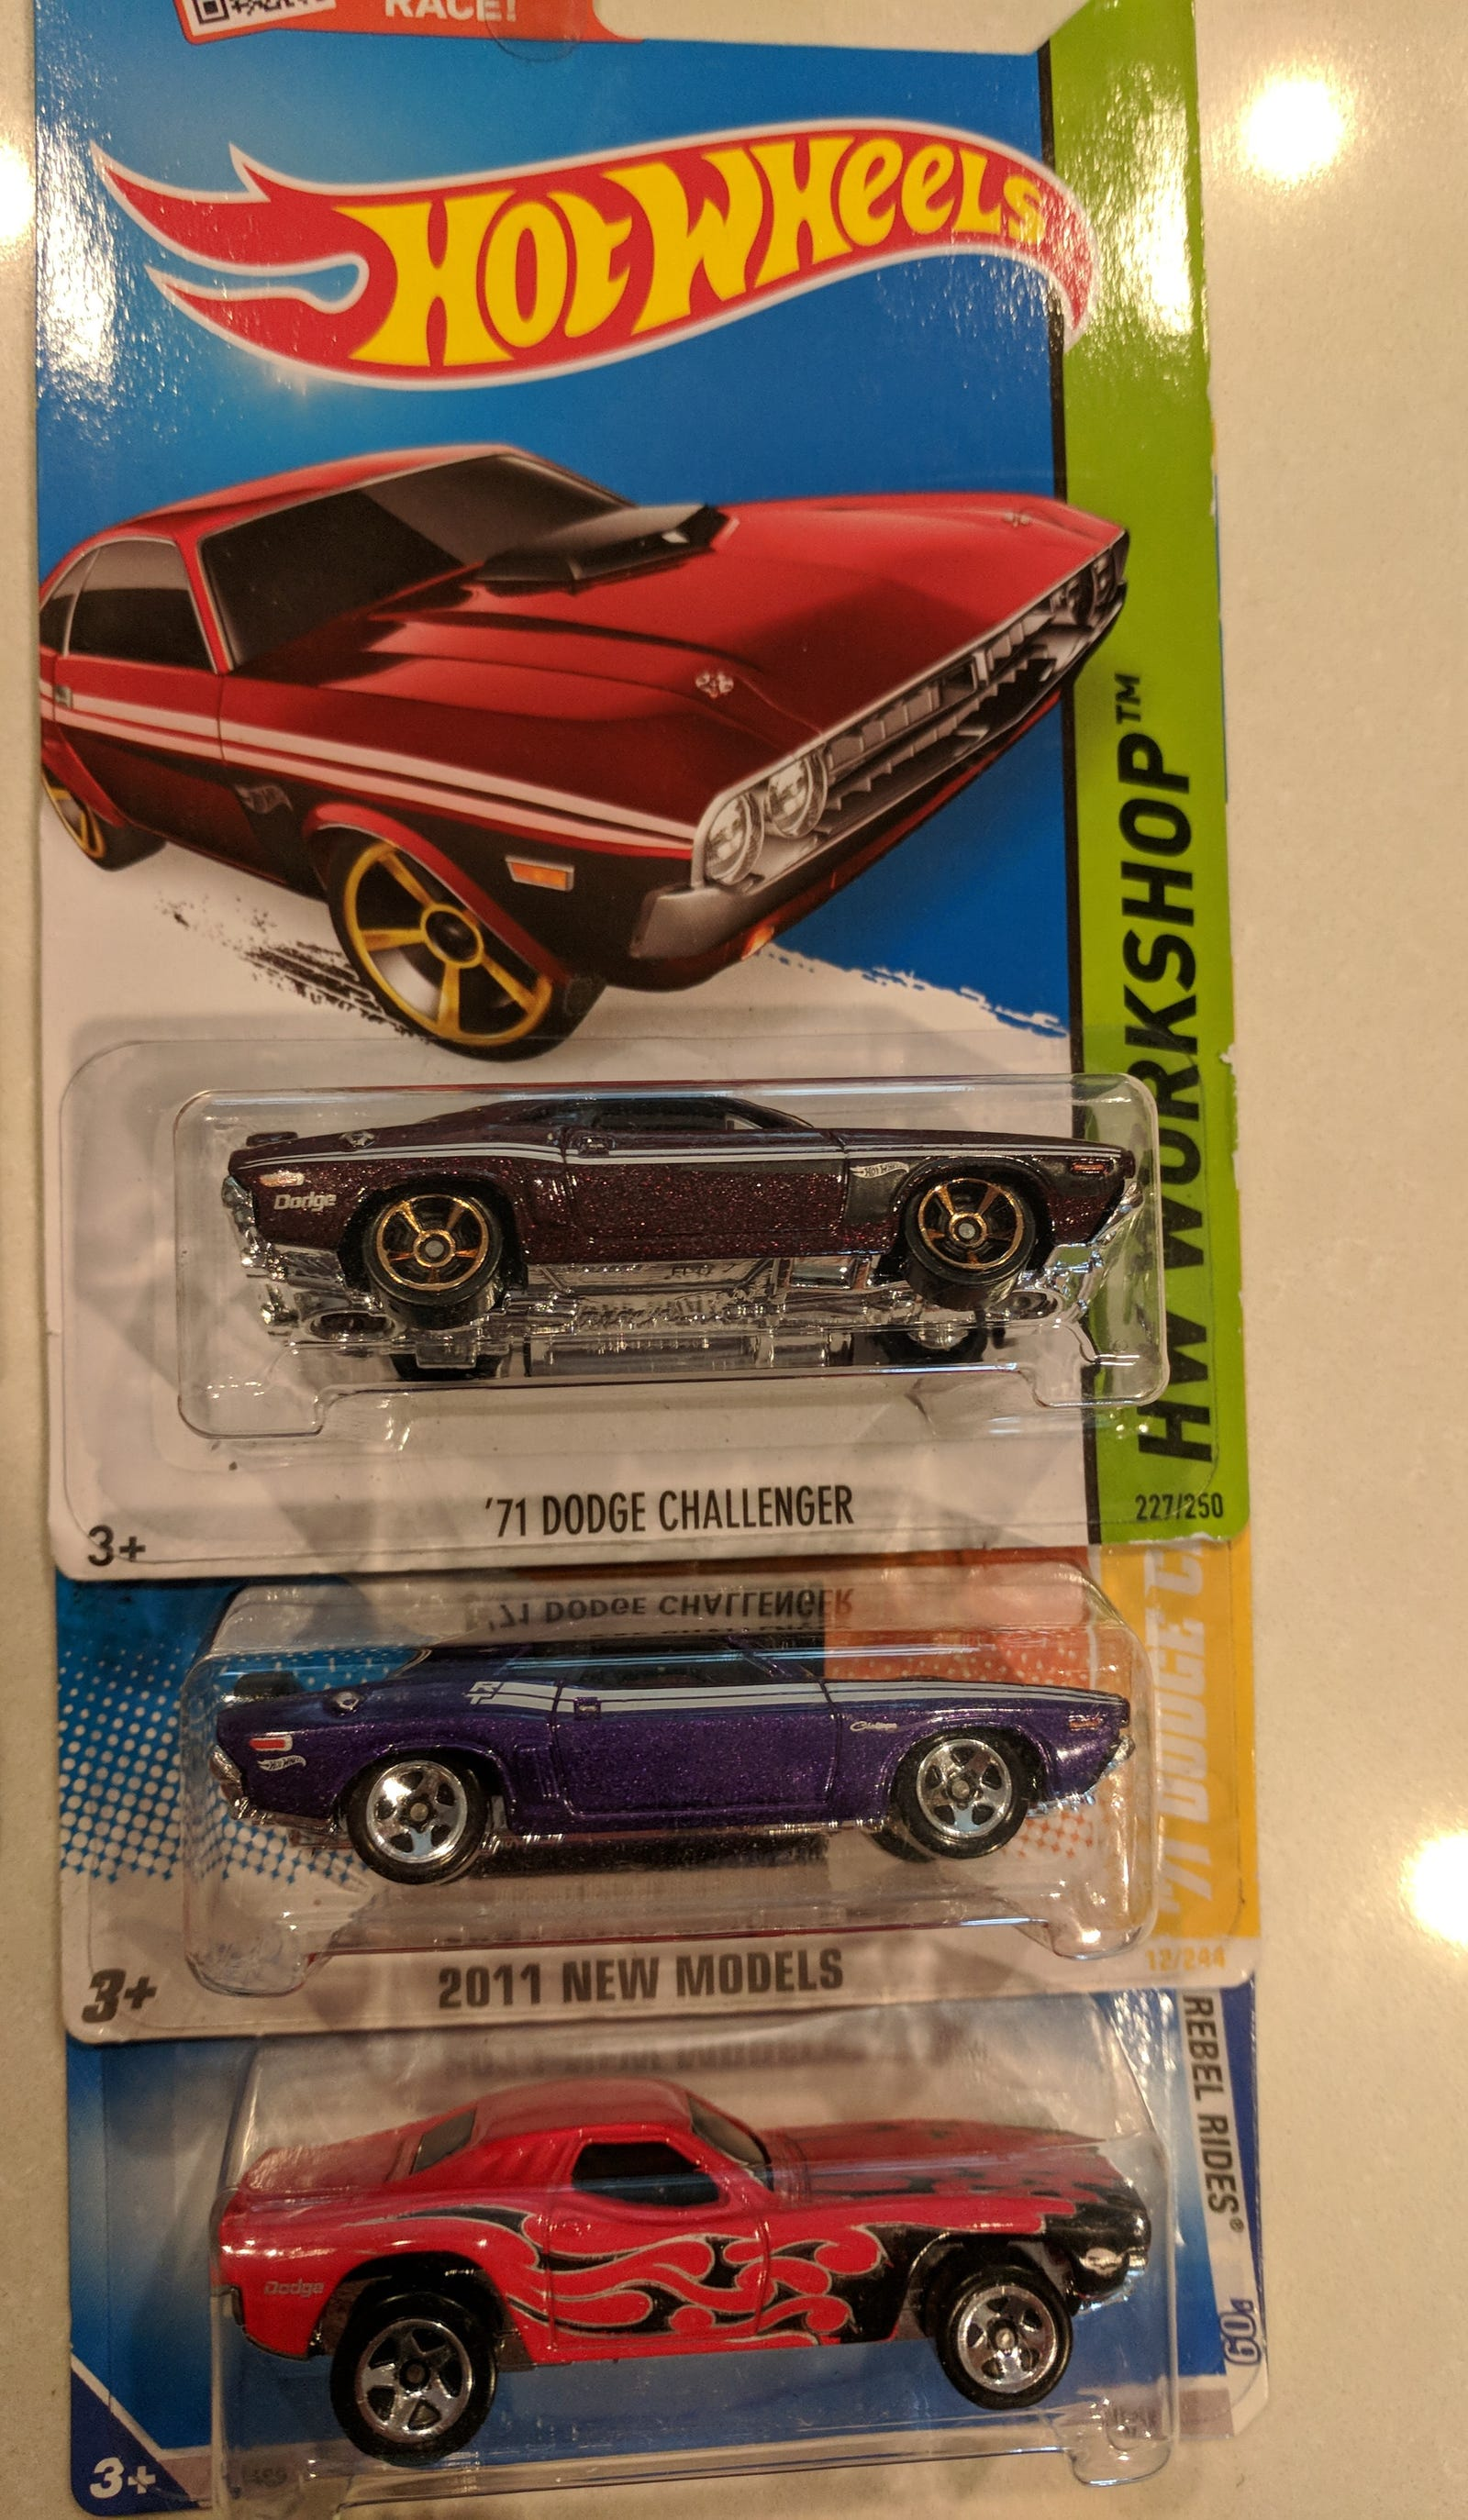 Lot 15: Classic Mopar - $20 for 23 cars including 2 '71 Challengers, Dixie Challenger...